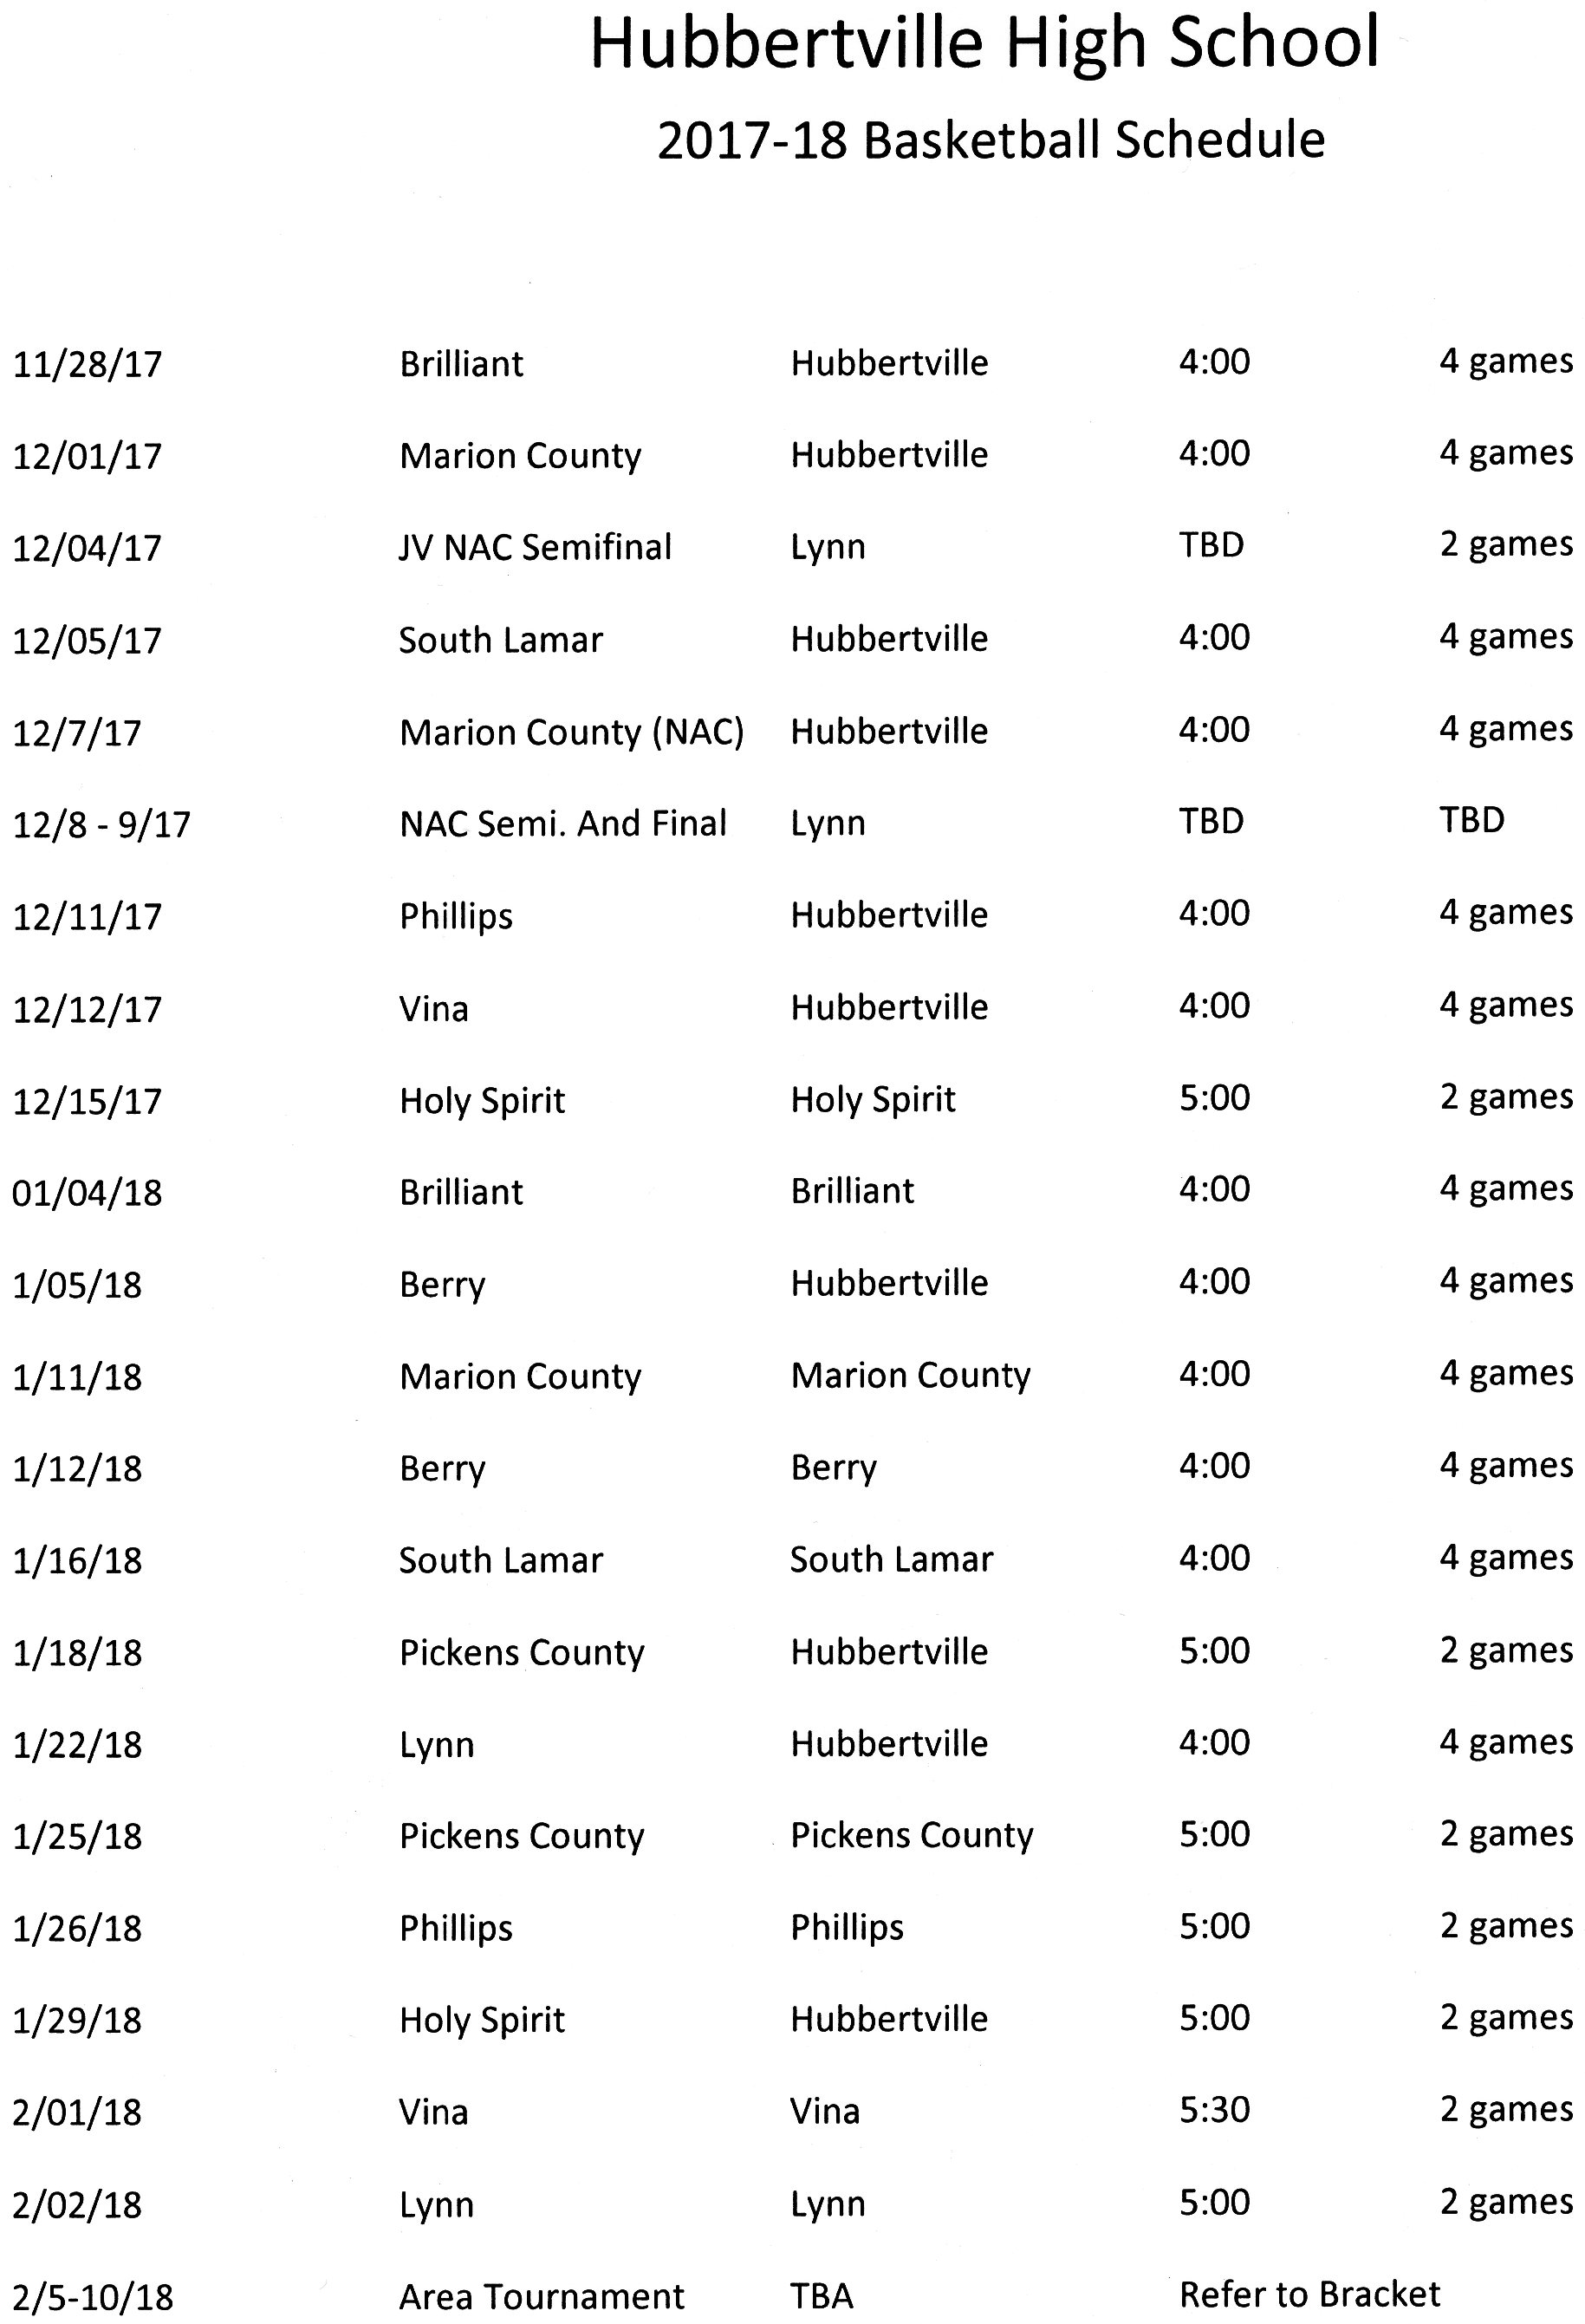 Basketball Schedule 2017-2018